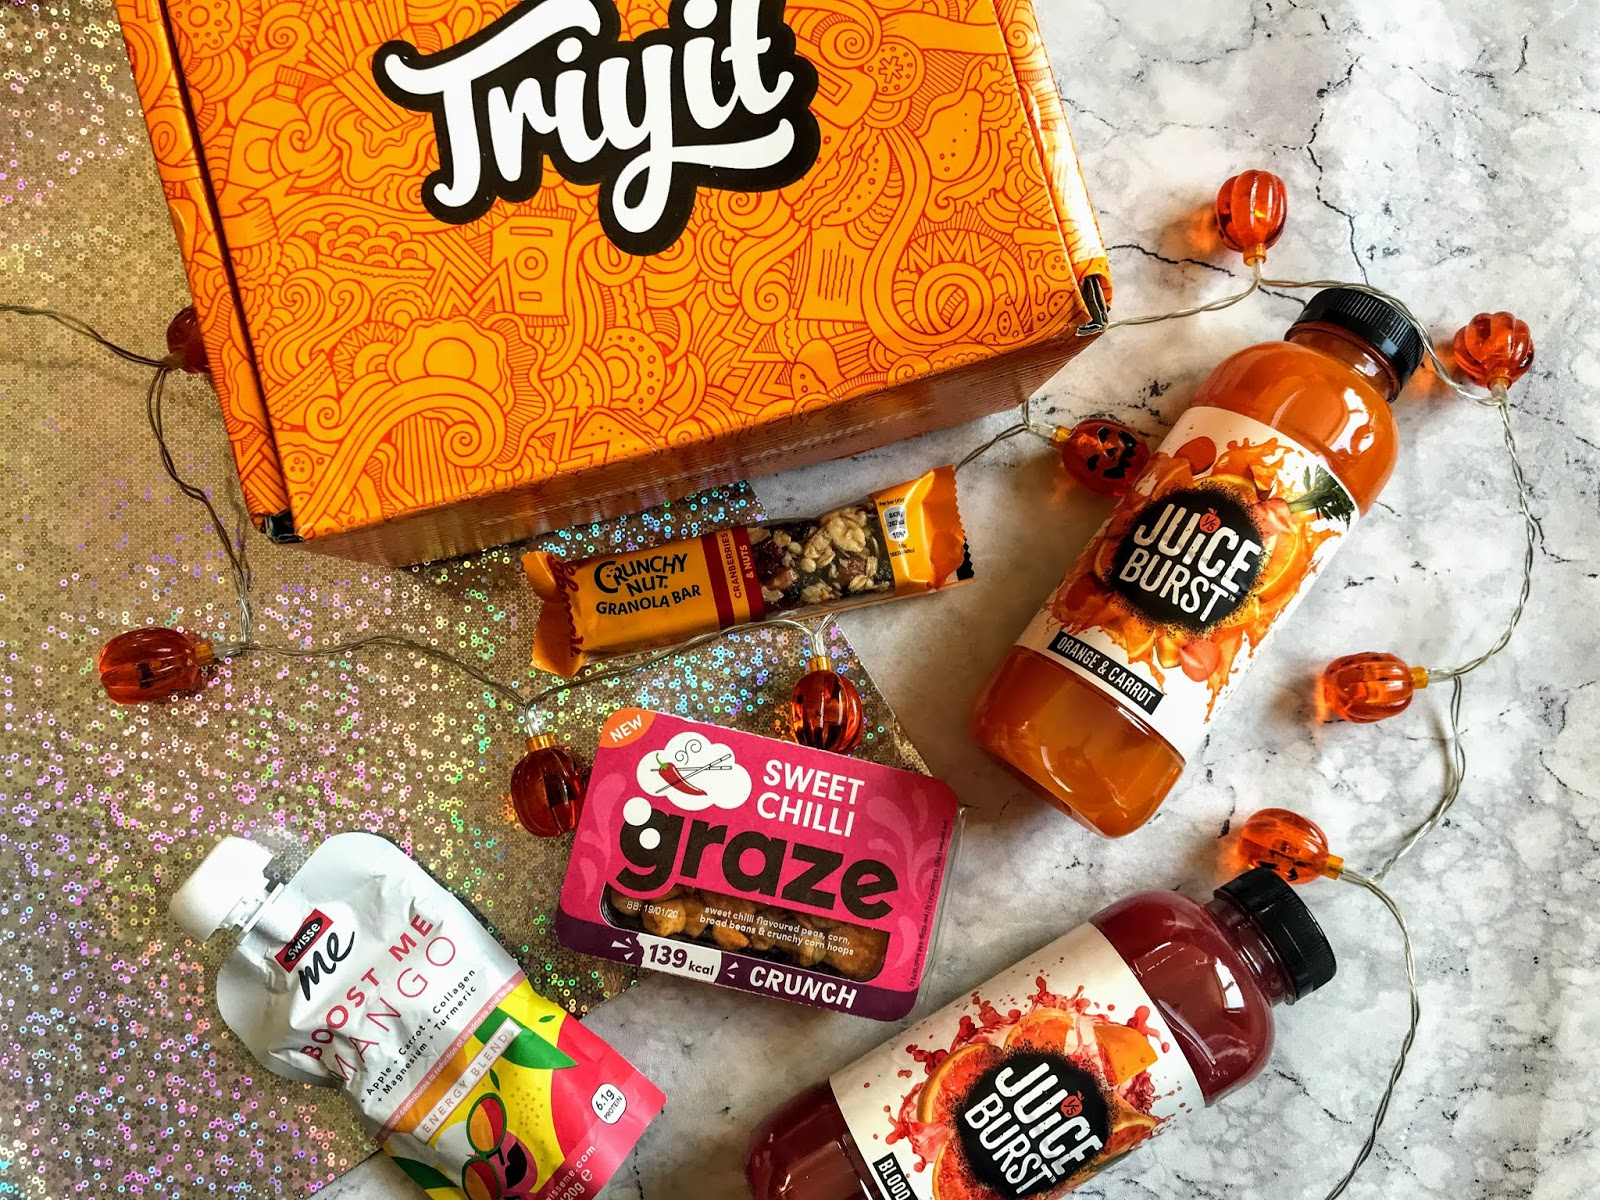 Triyit 'Tickled Taste Buds' Box Review | Freebie